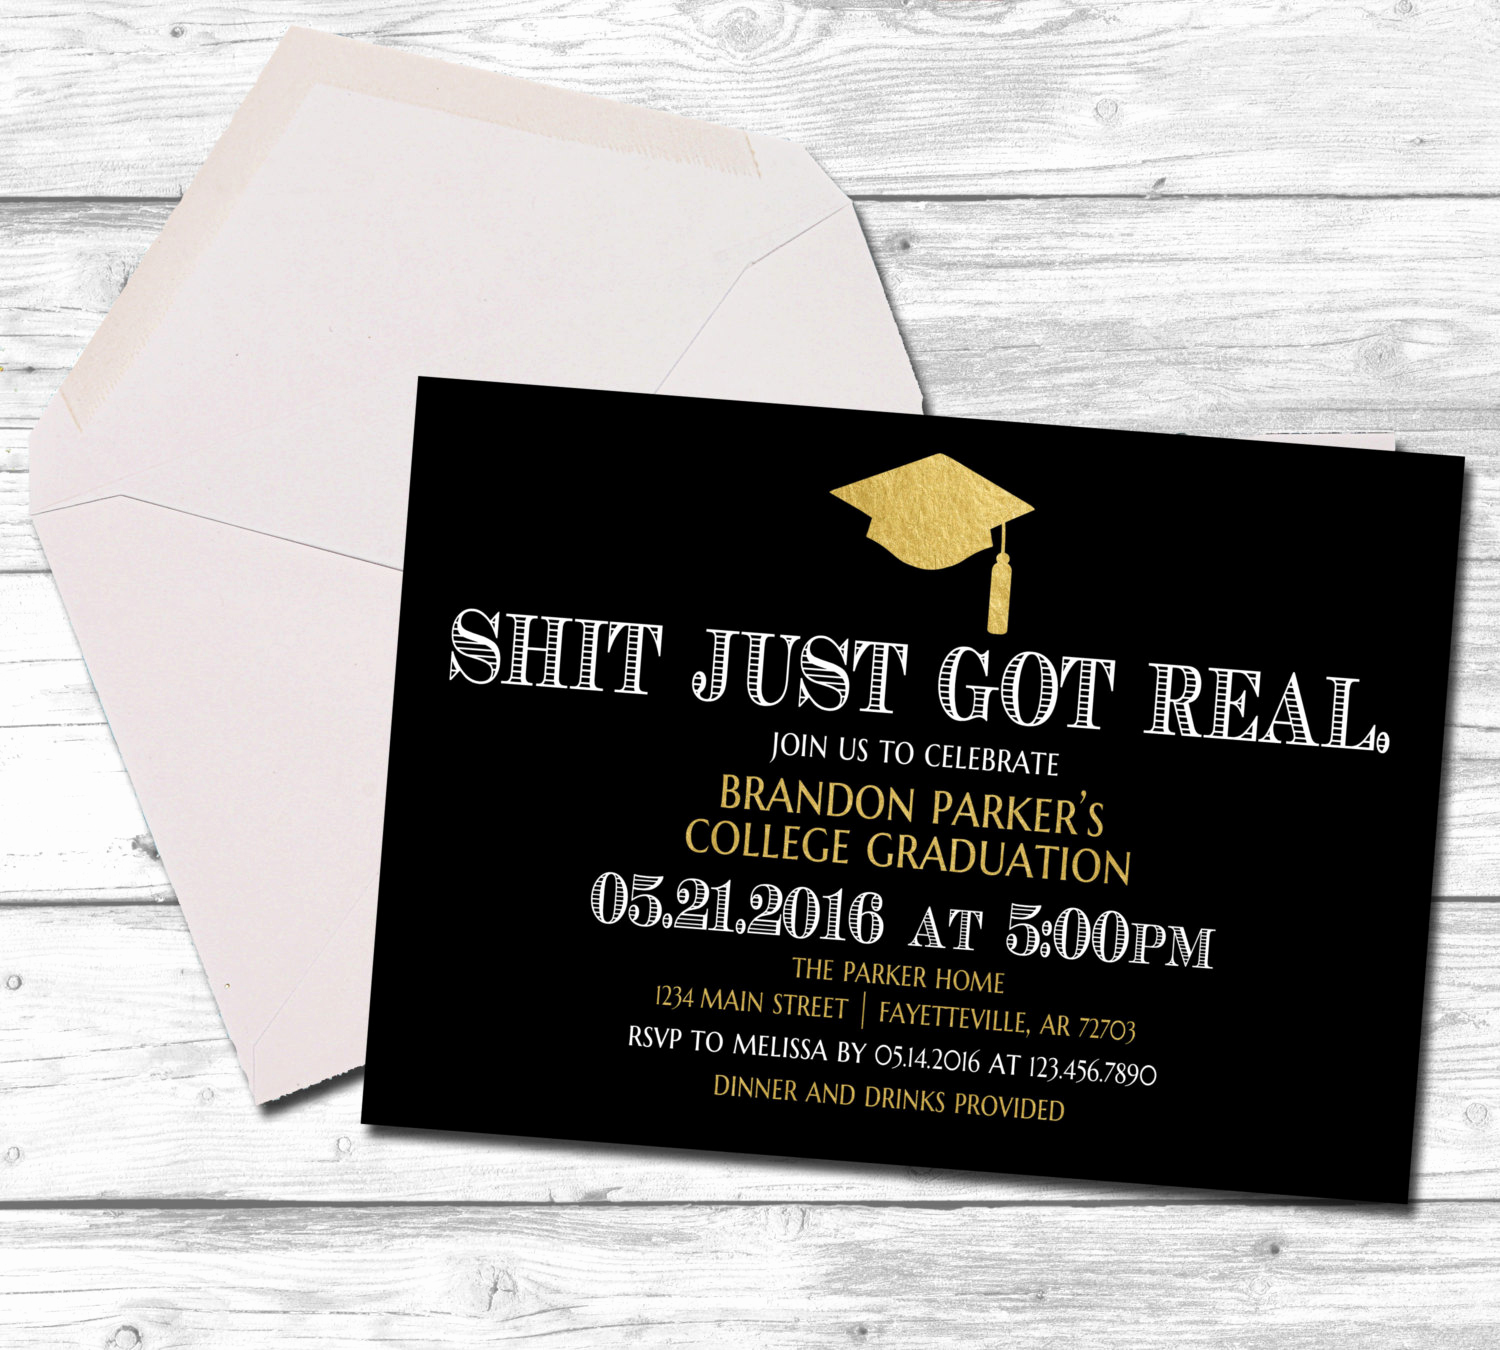 Catchy Graduation Invitation Phrases Beautiful Graduation Graduation Invitation Shit Just Got Real Black